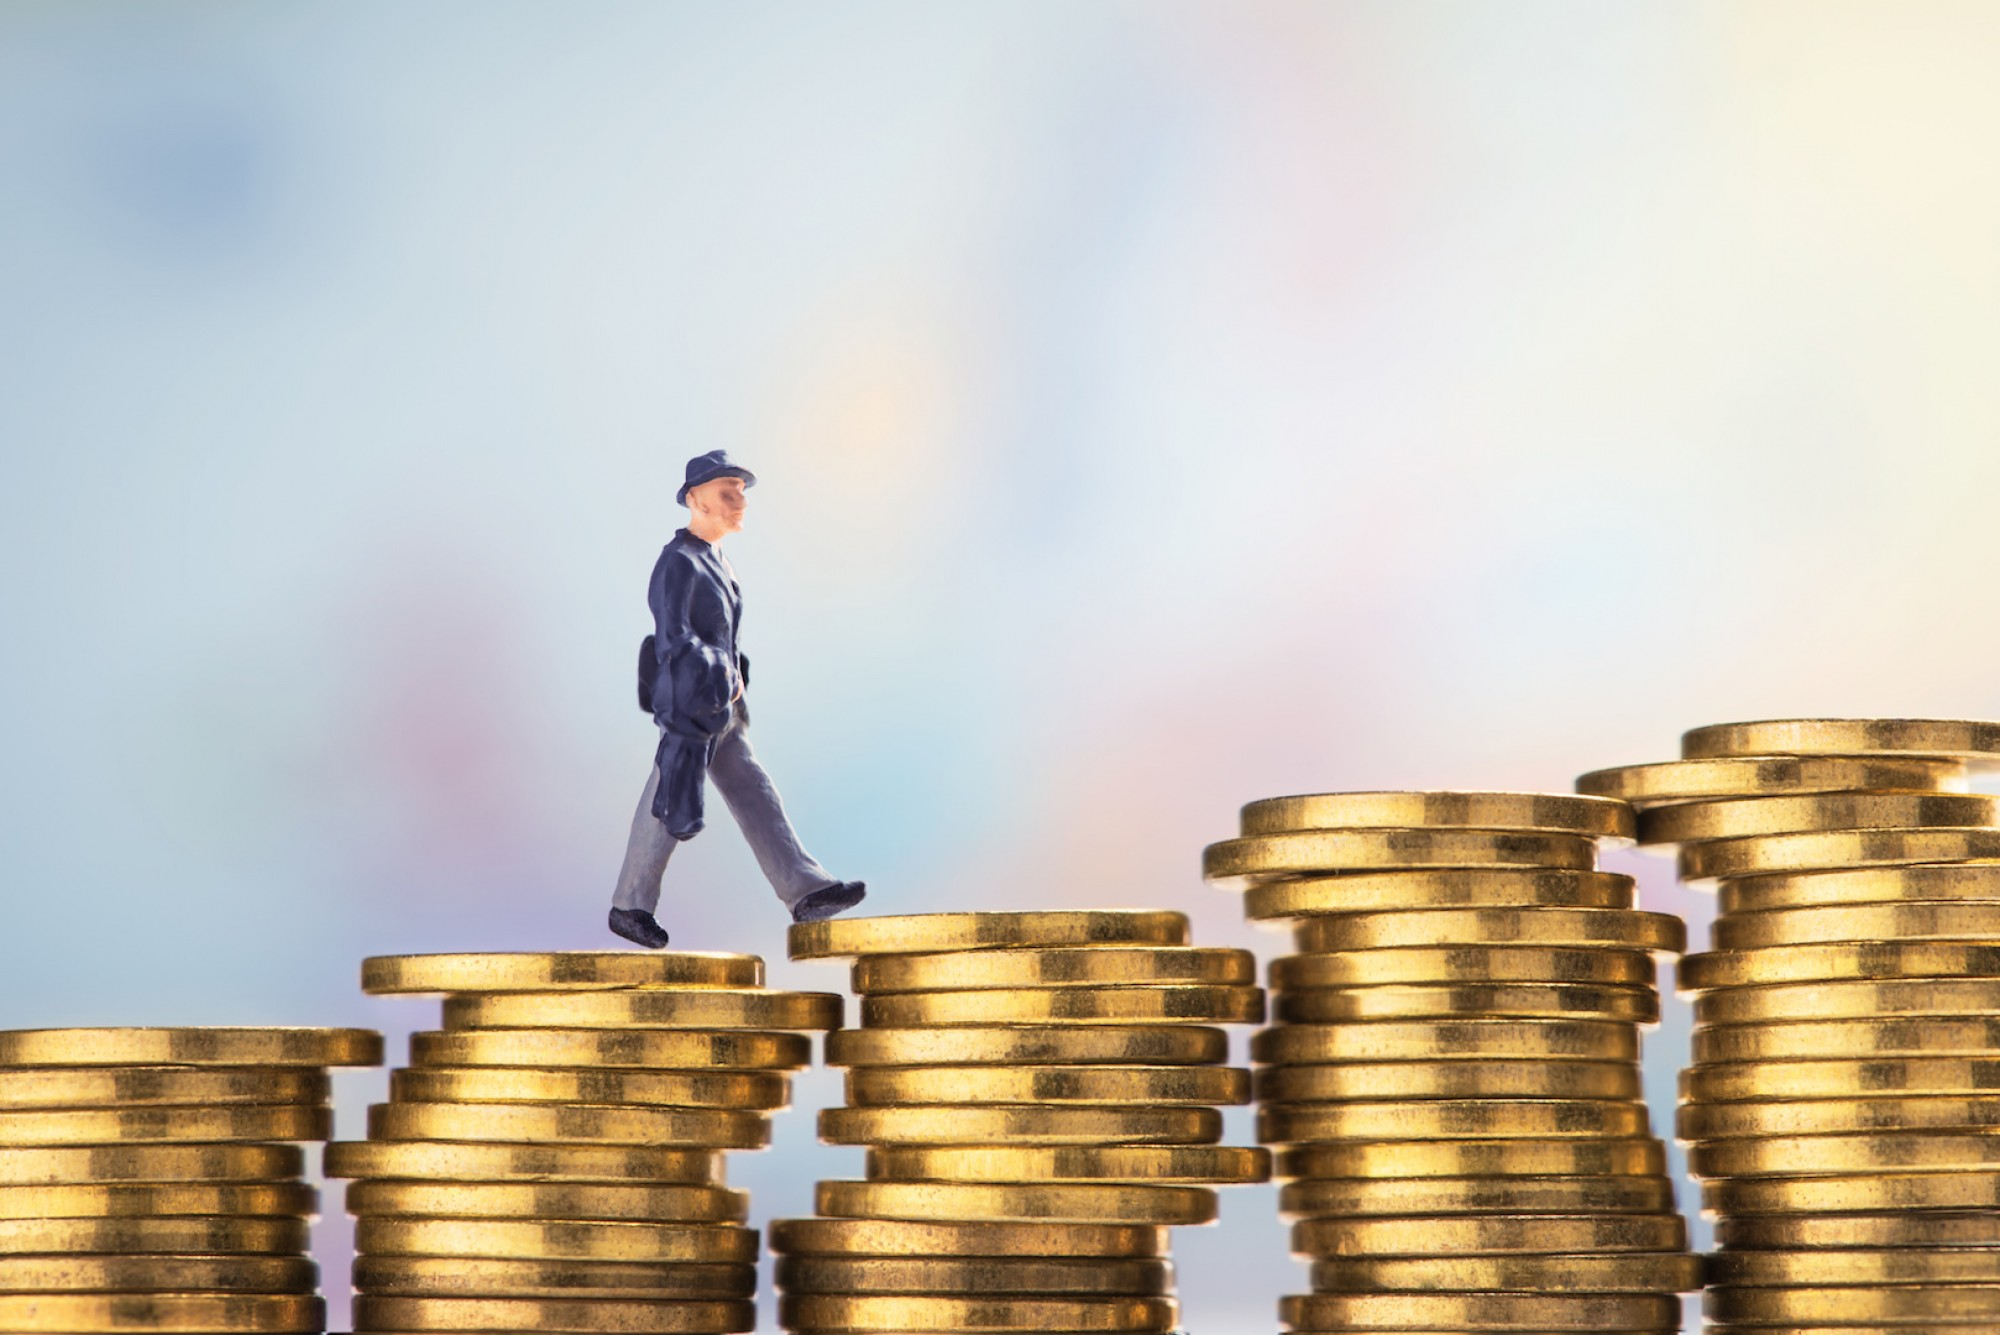 7 Reasons To Pursue A Career In Wealth Management